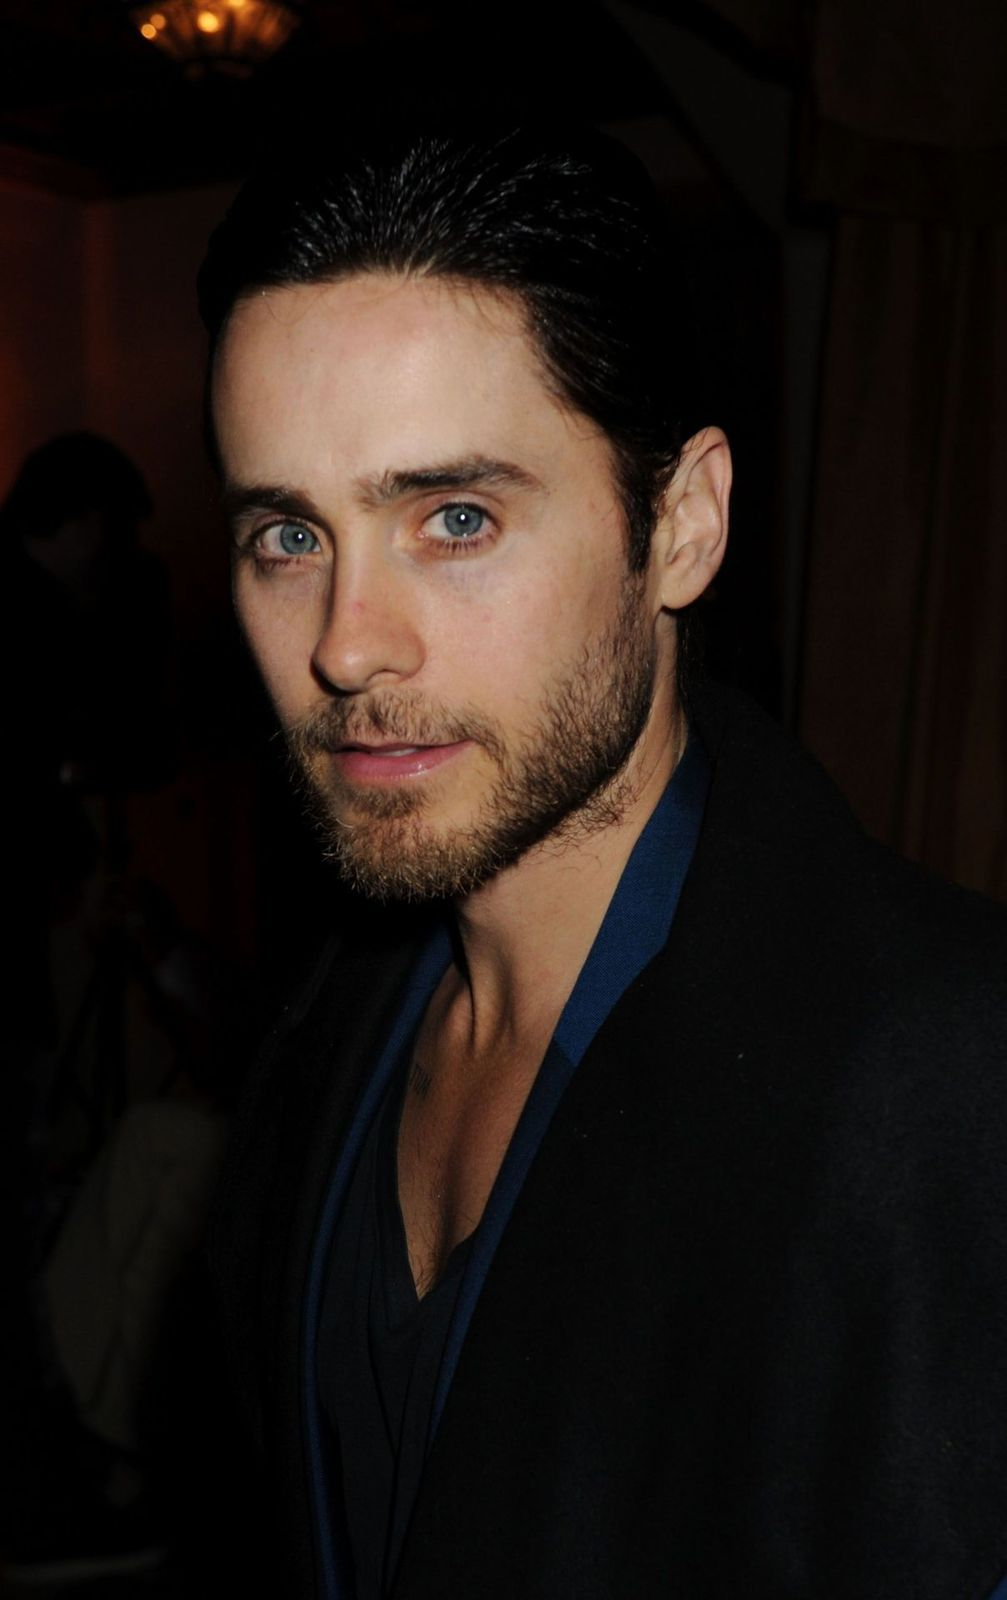 Jared Leto at 54th Grammy Awards Viewing Reception hosted by Lucian Grainge, 12 Février 2012 002